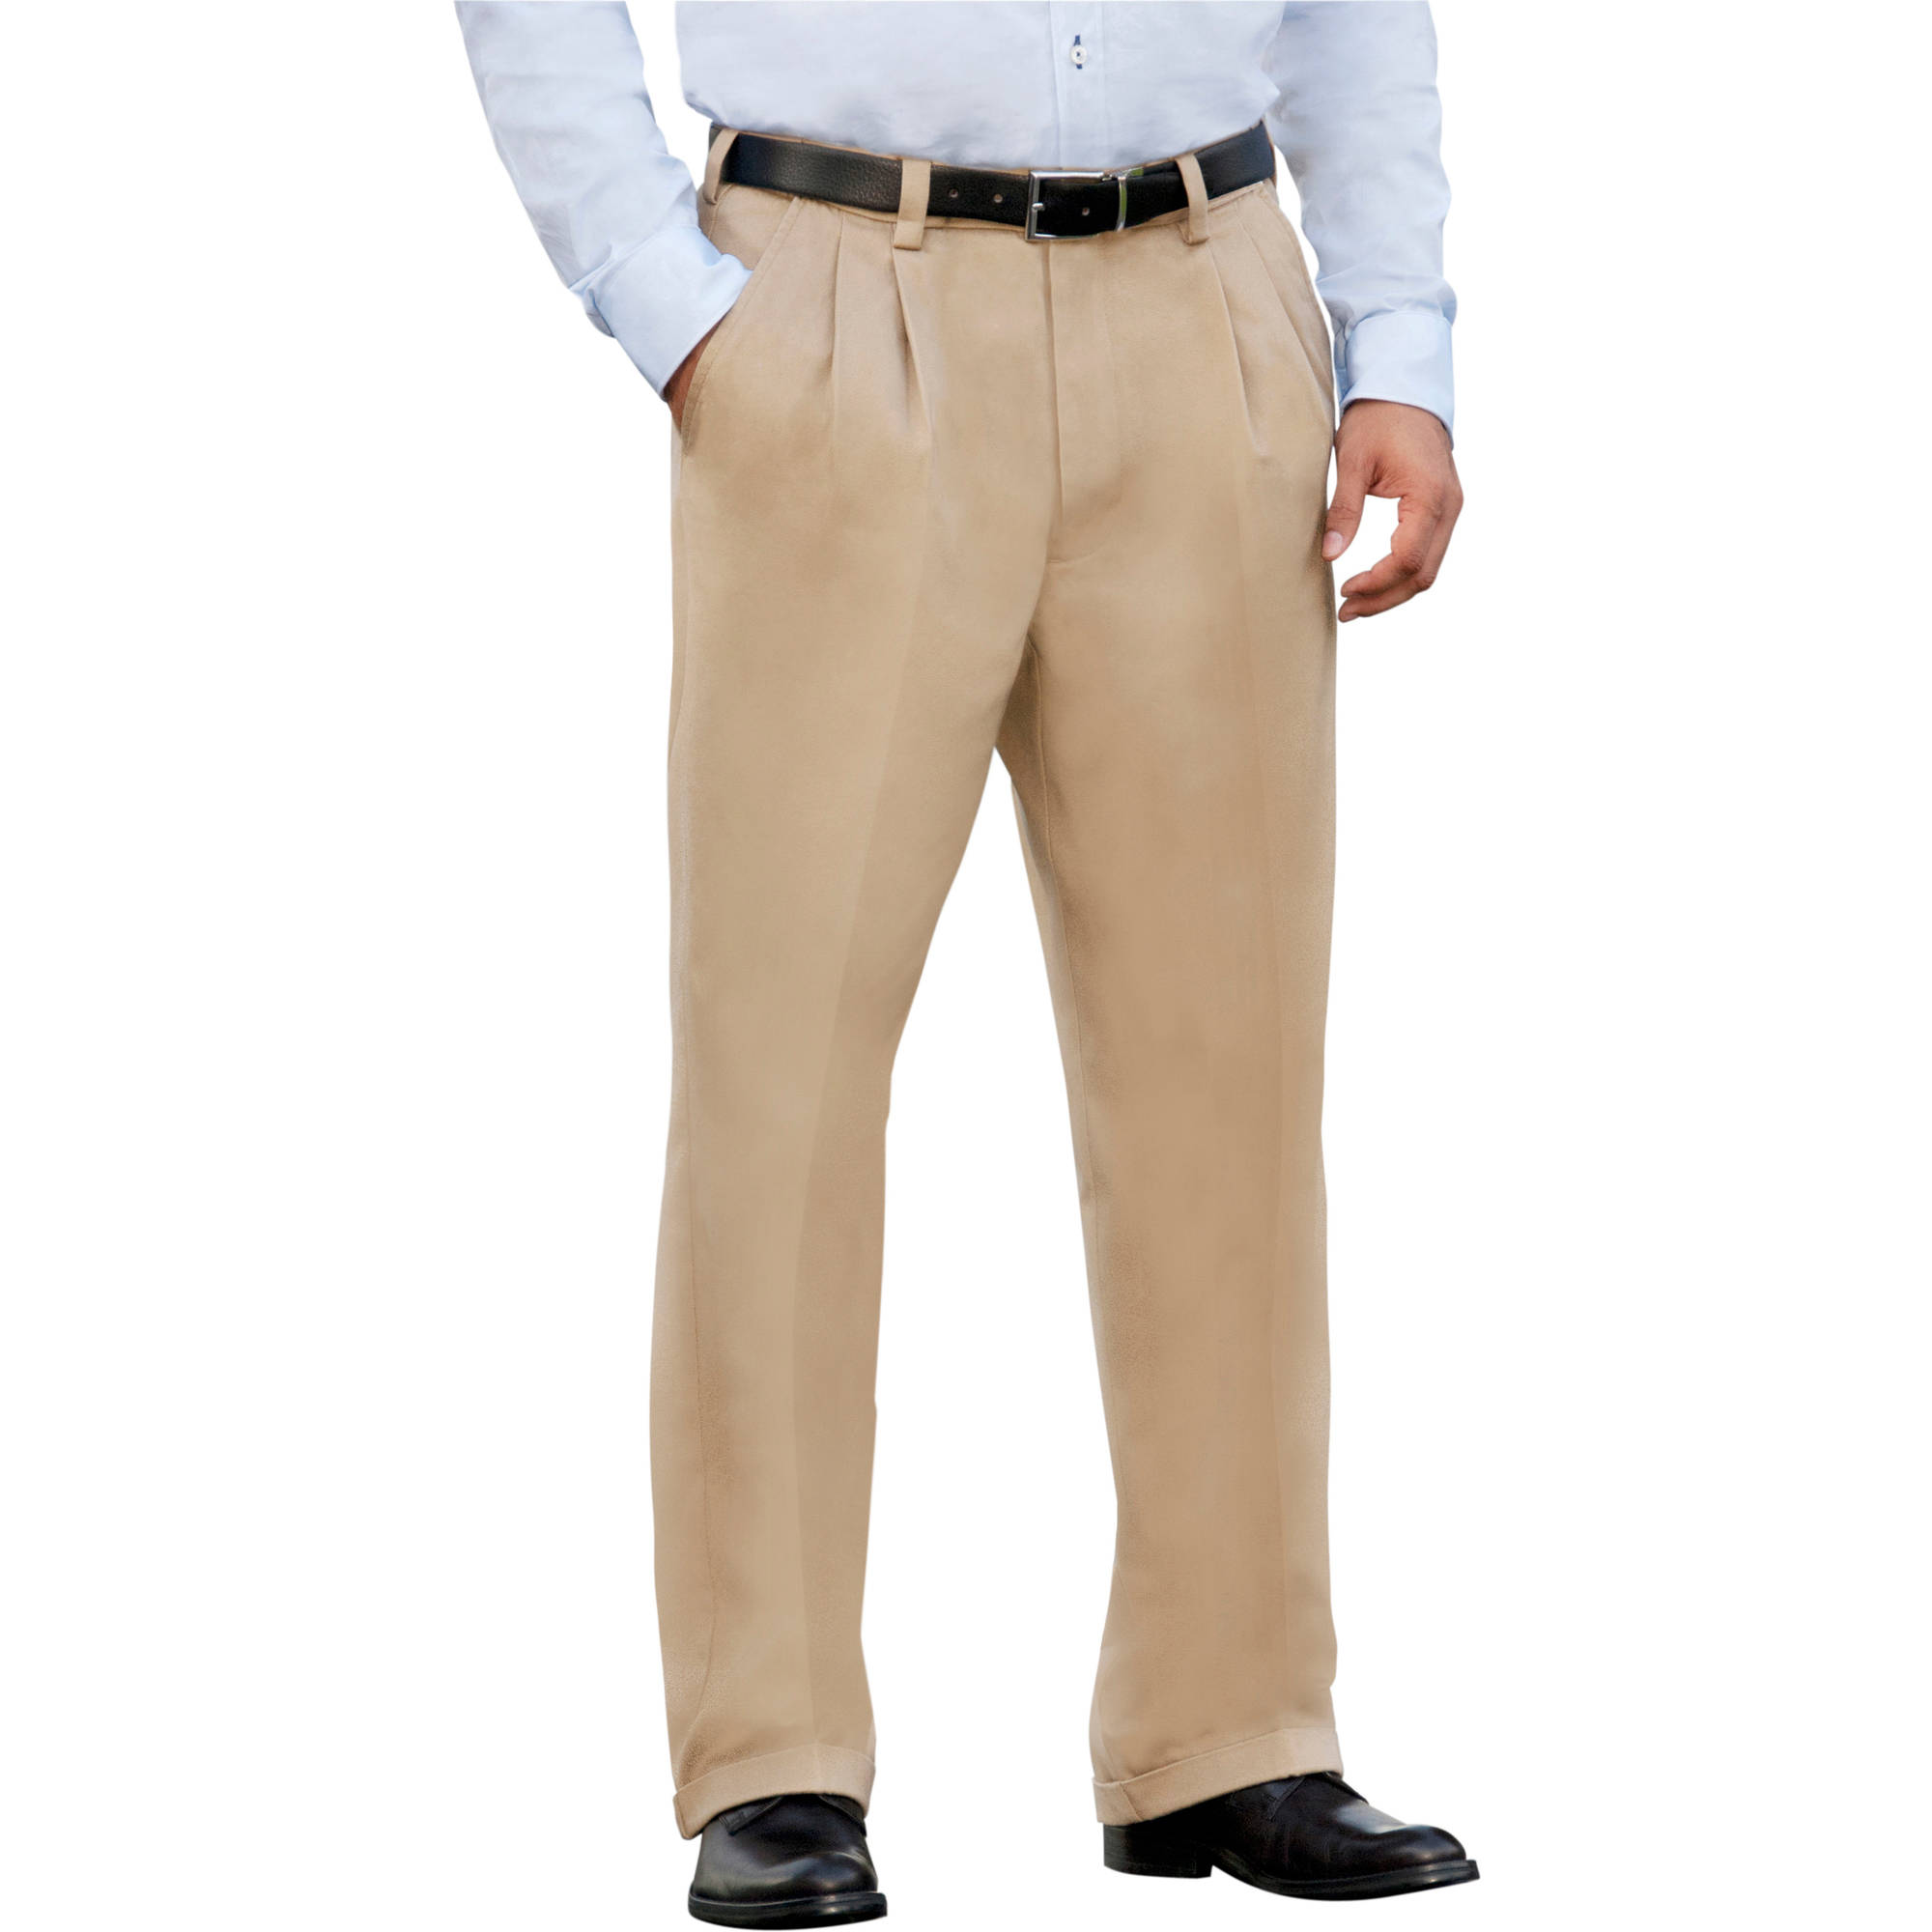 What Does Pleated Pants Mean - White Pants 2016